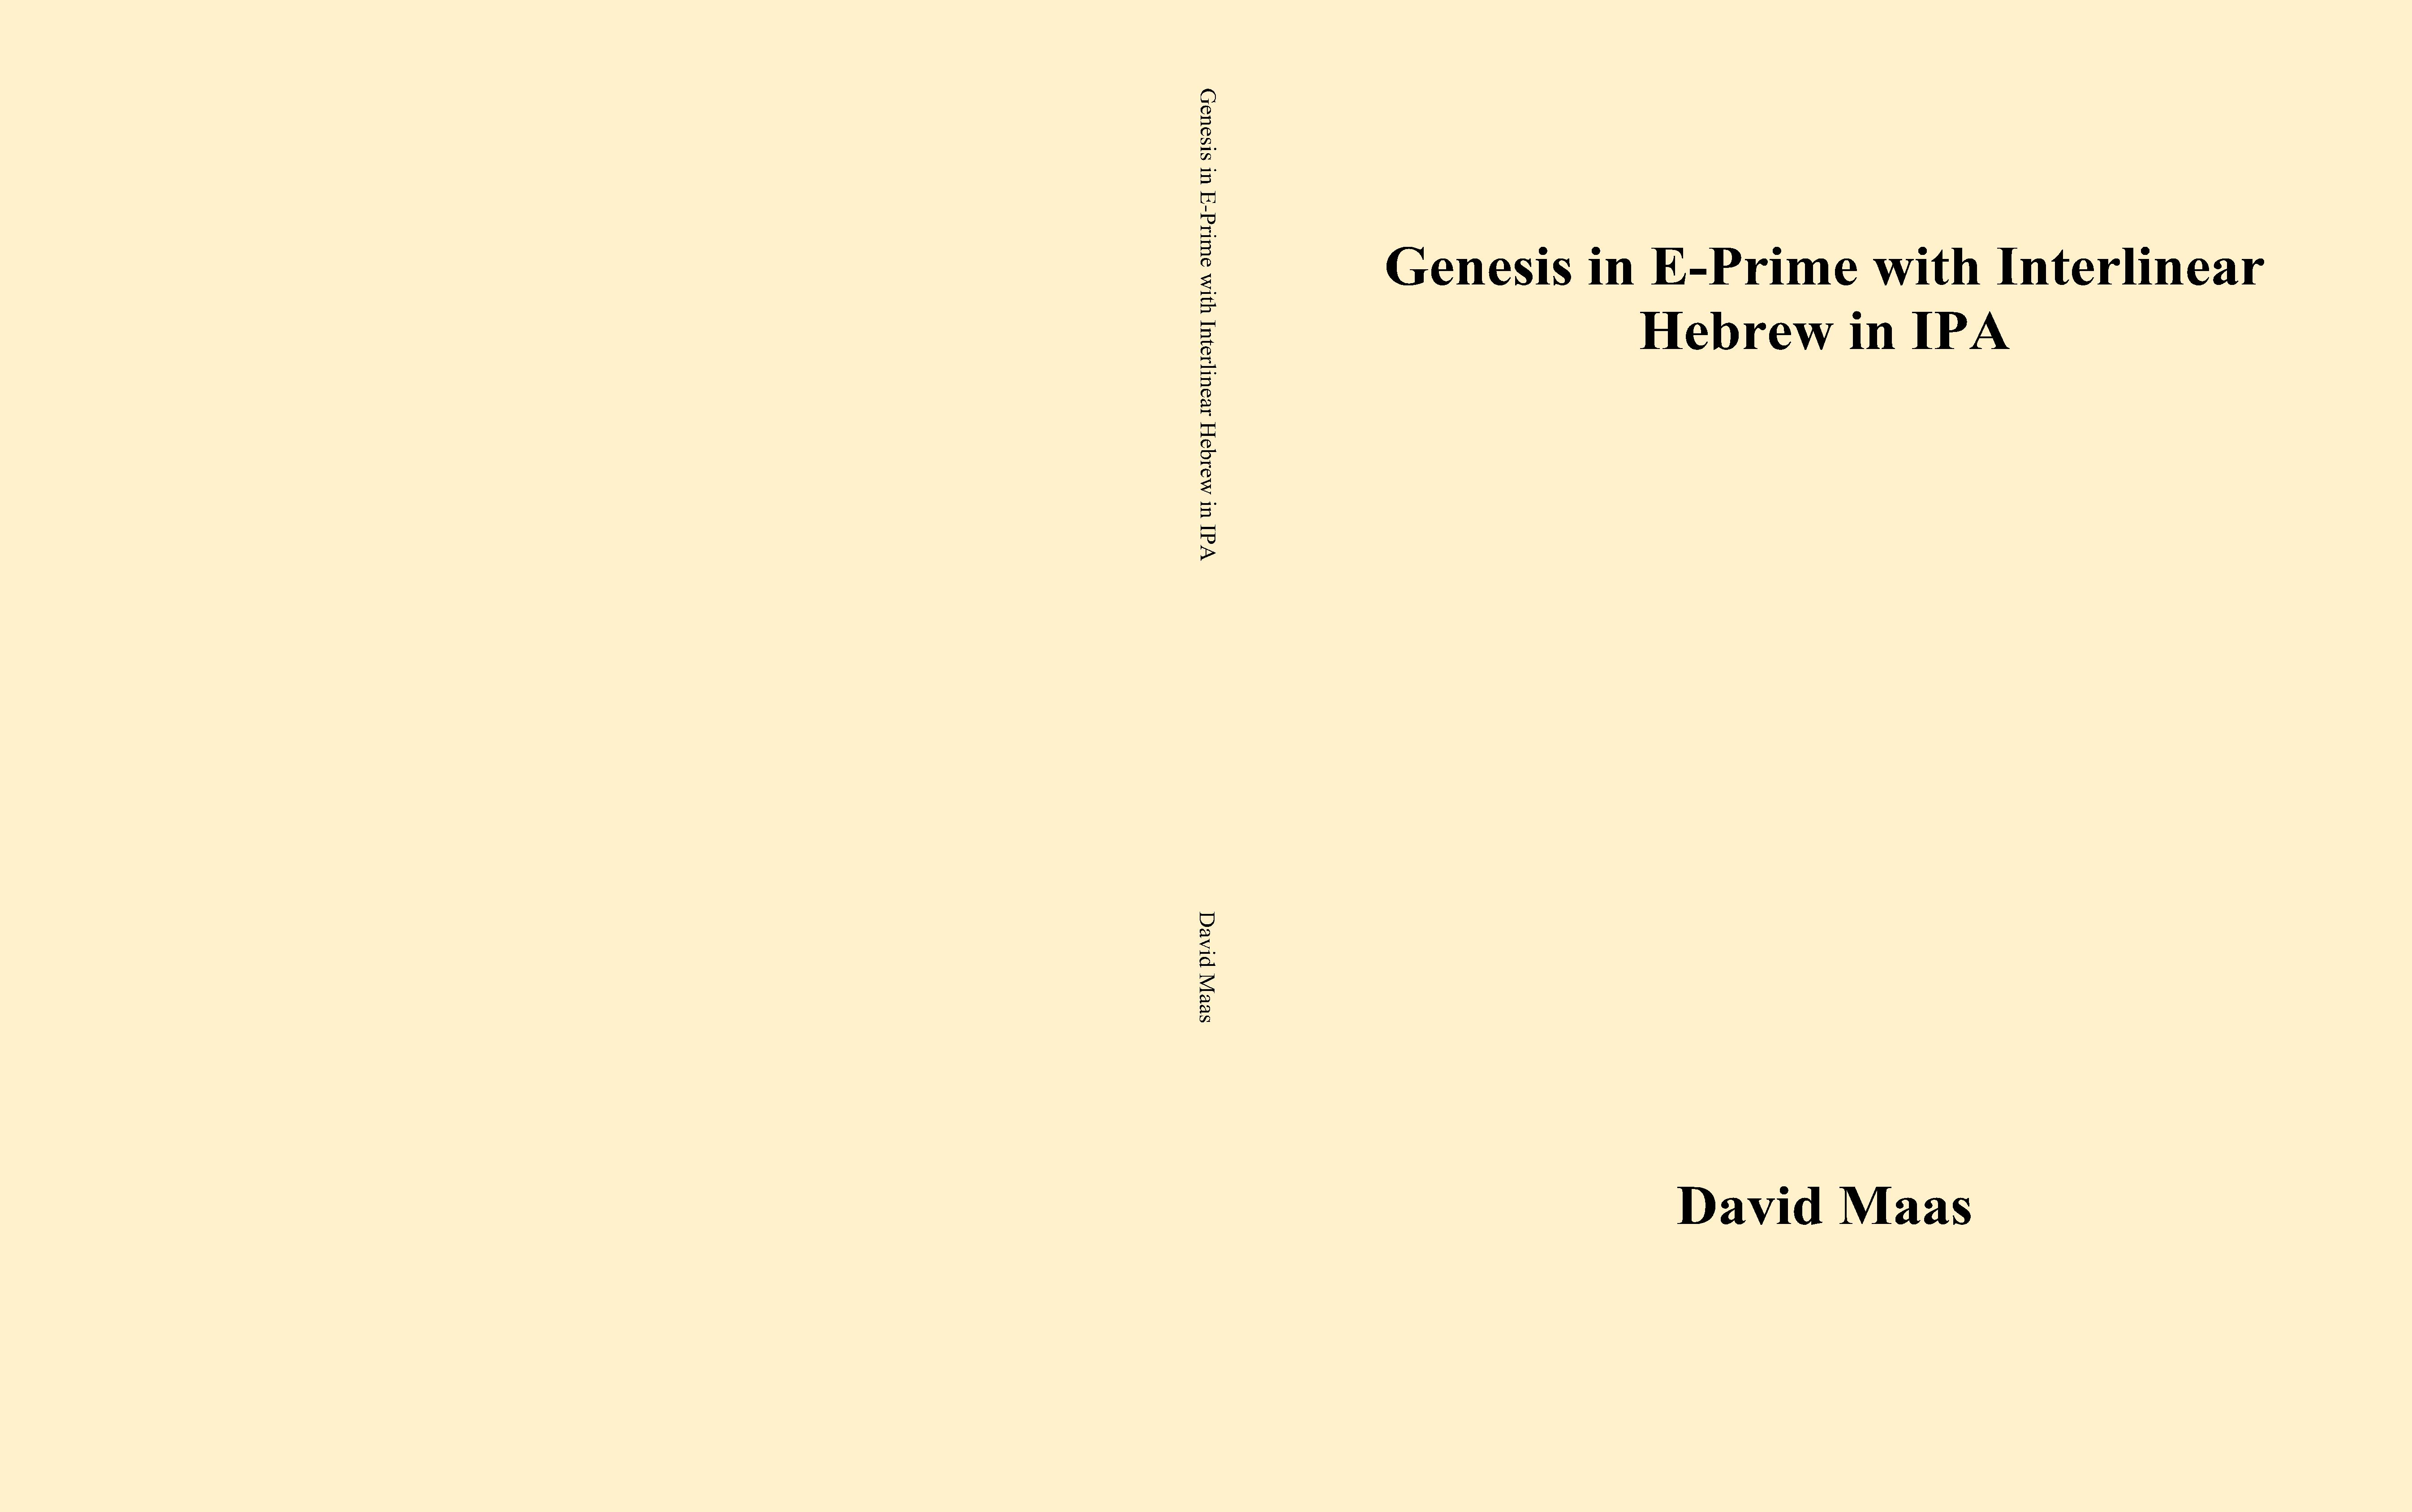 Genesis in E-Prime with Interlinear Hebrew in IPA cover image